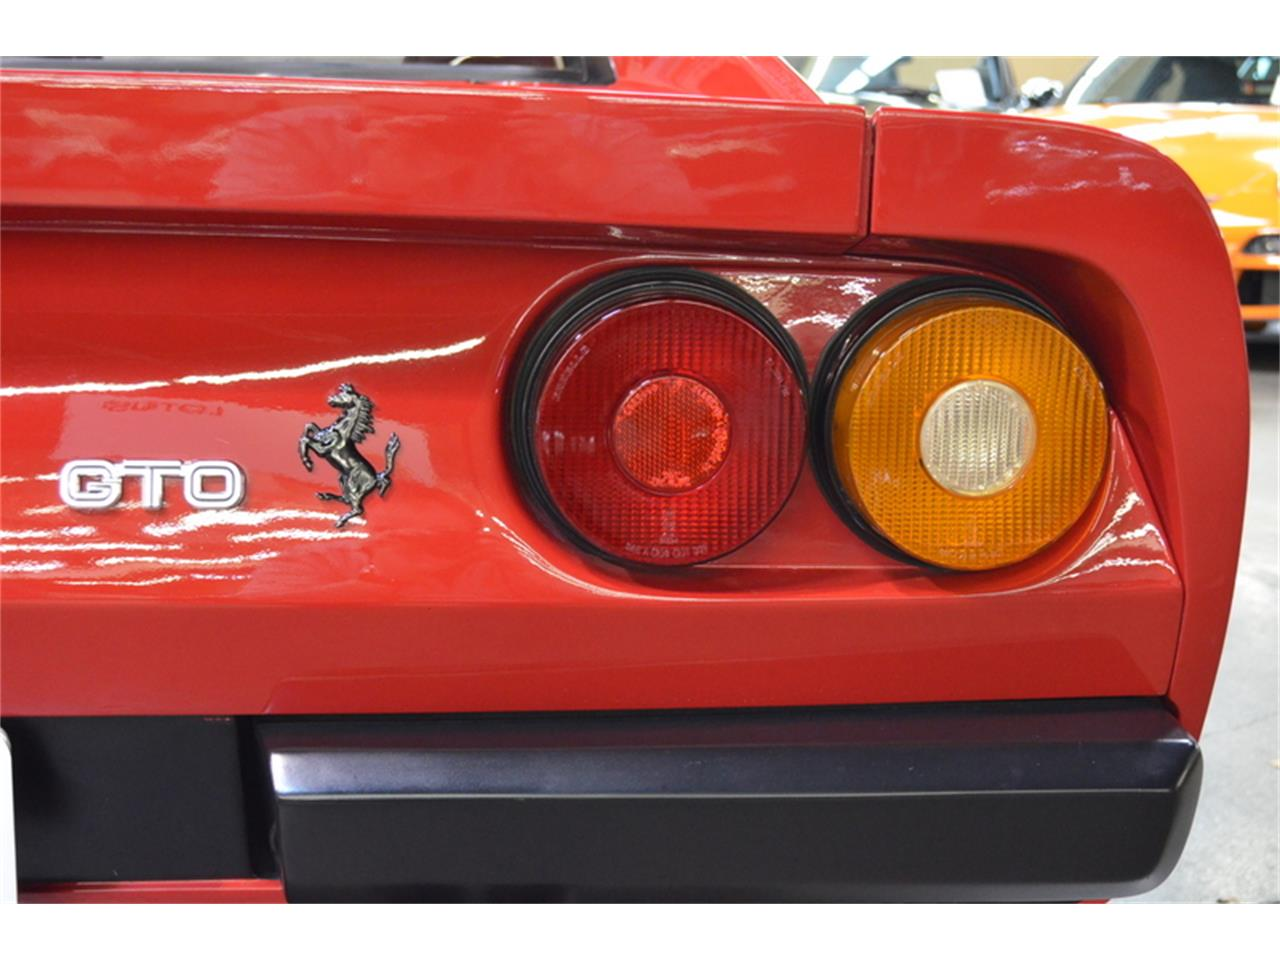 1985 Ferrari GTO for sale in Huntington Station, NY – photo 17